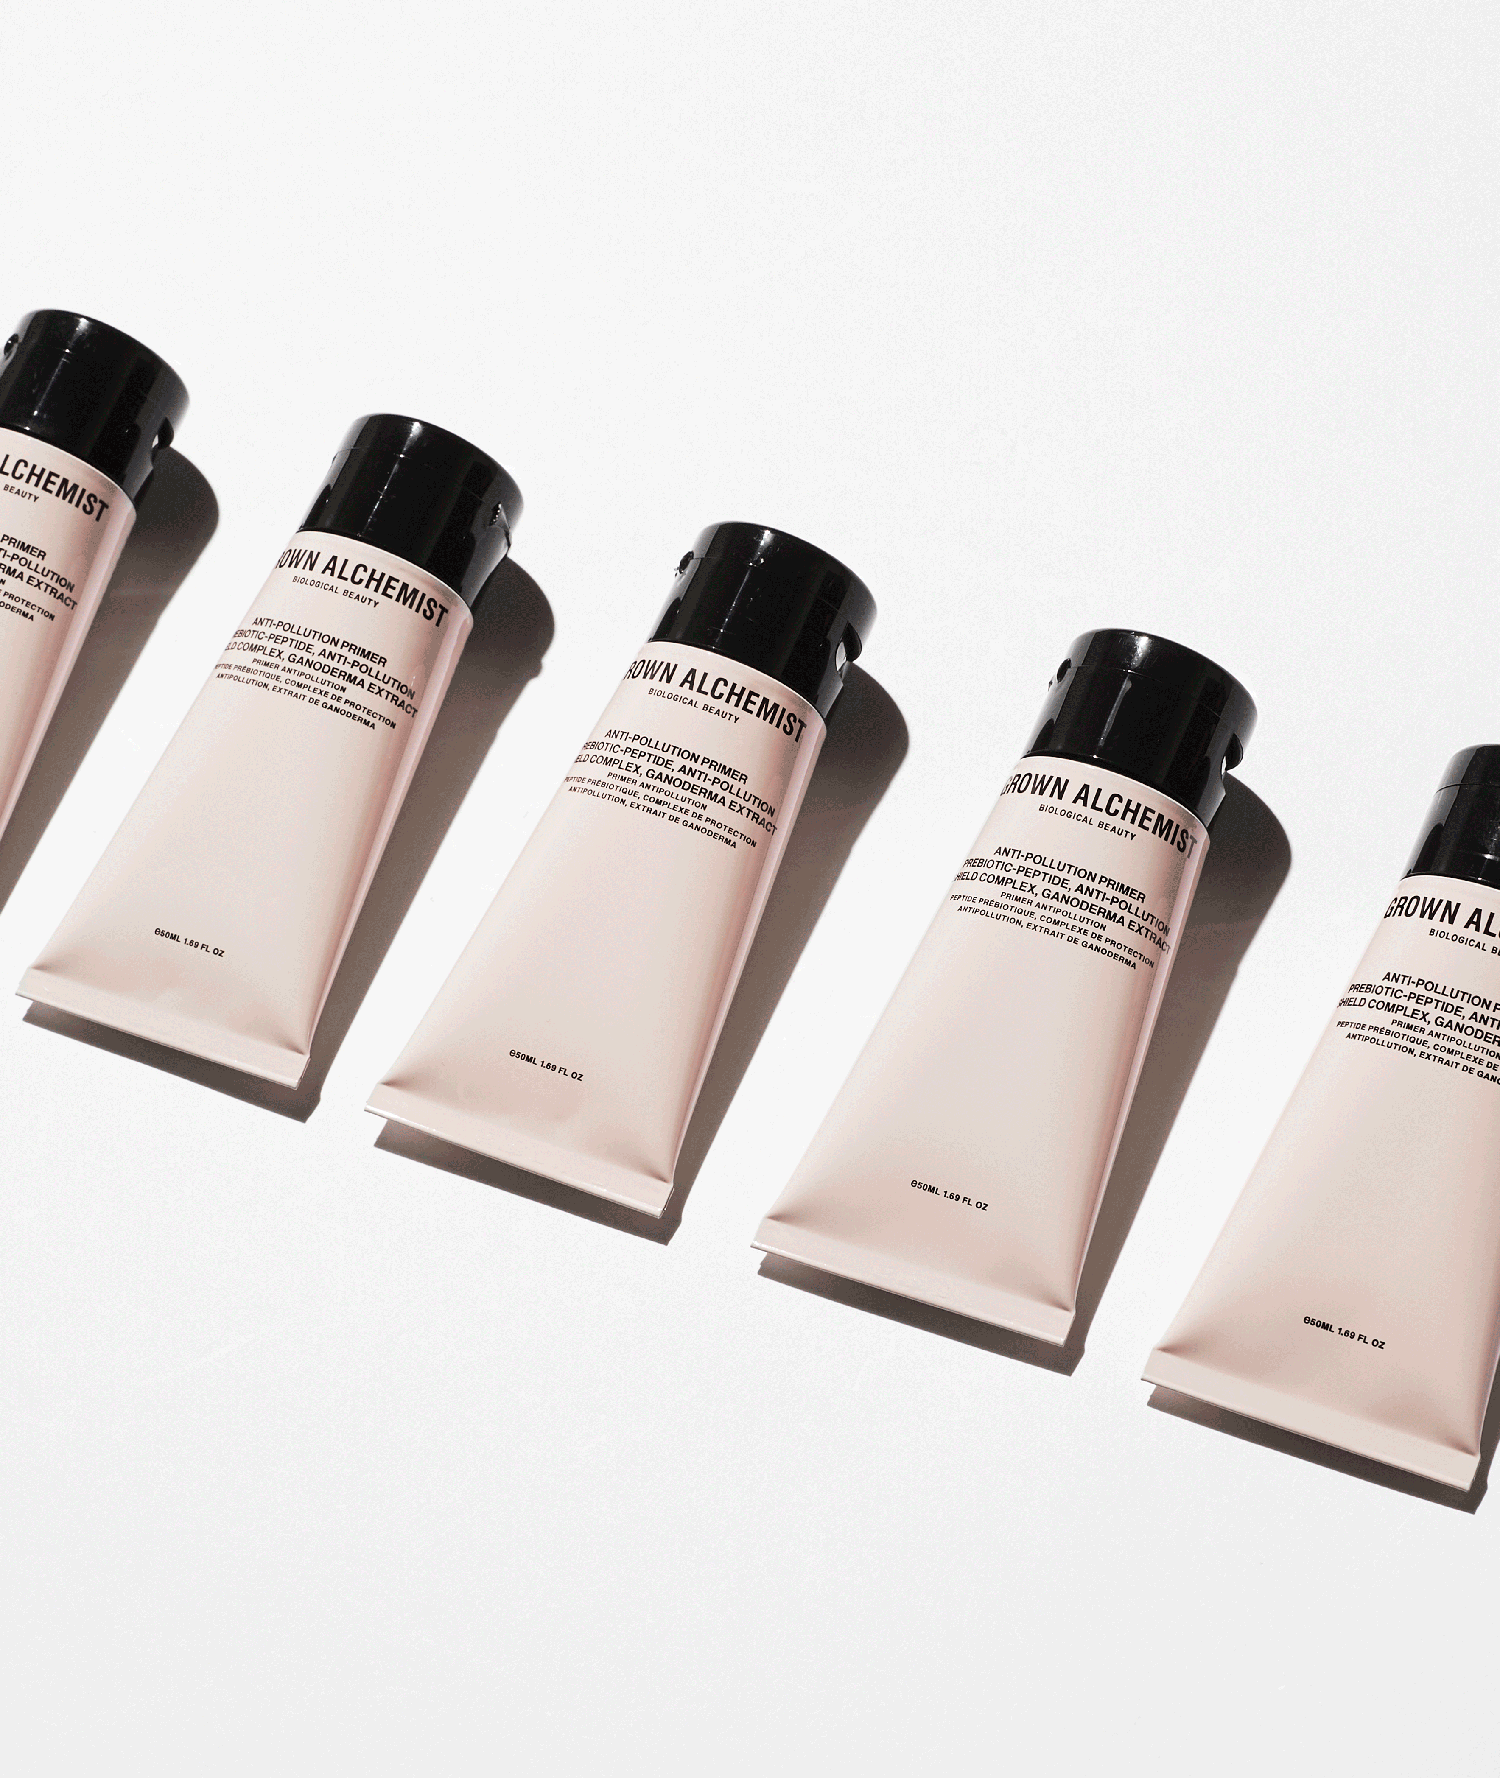 This Pore Blurring Primer Is Like a Real Life Filter for My Skin